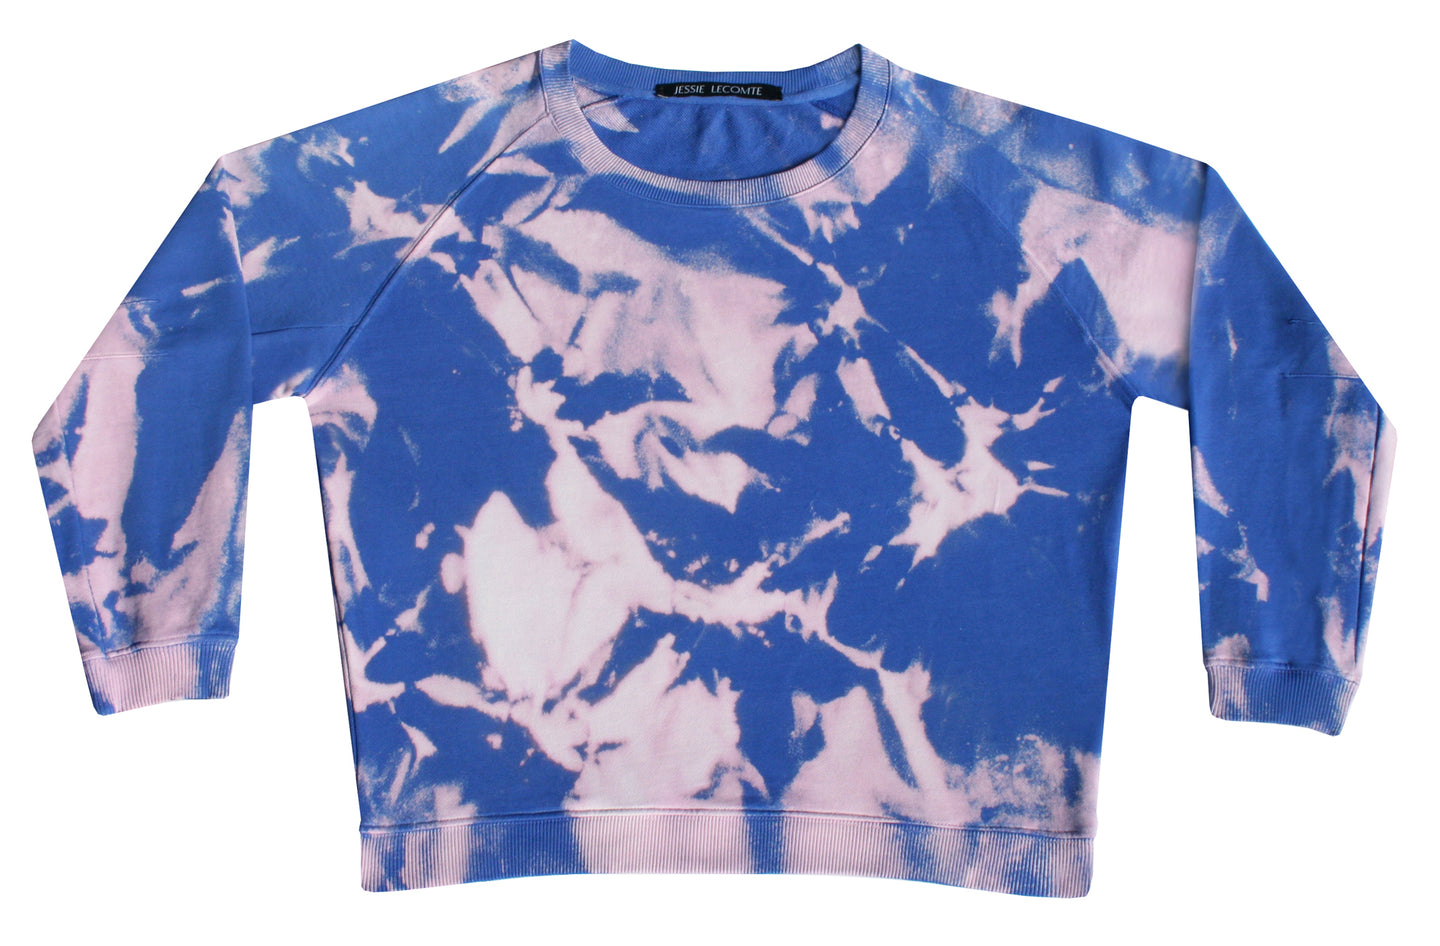 Tie-dye sweater Vivid blue